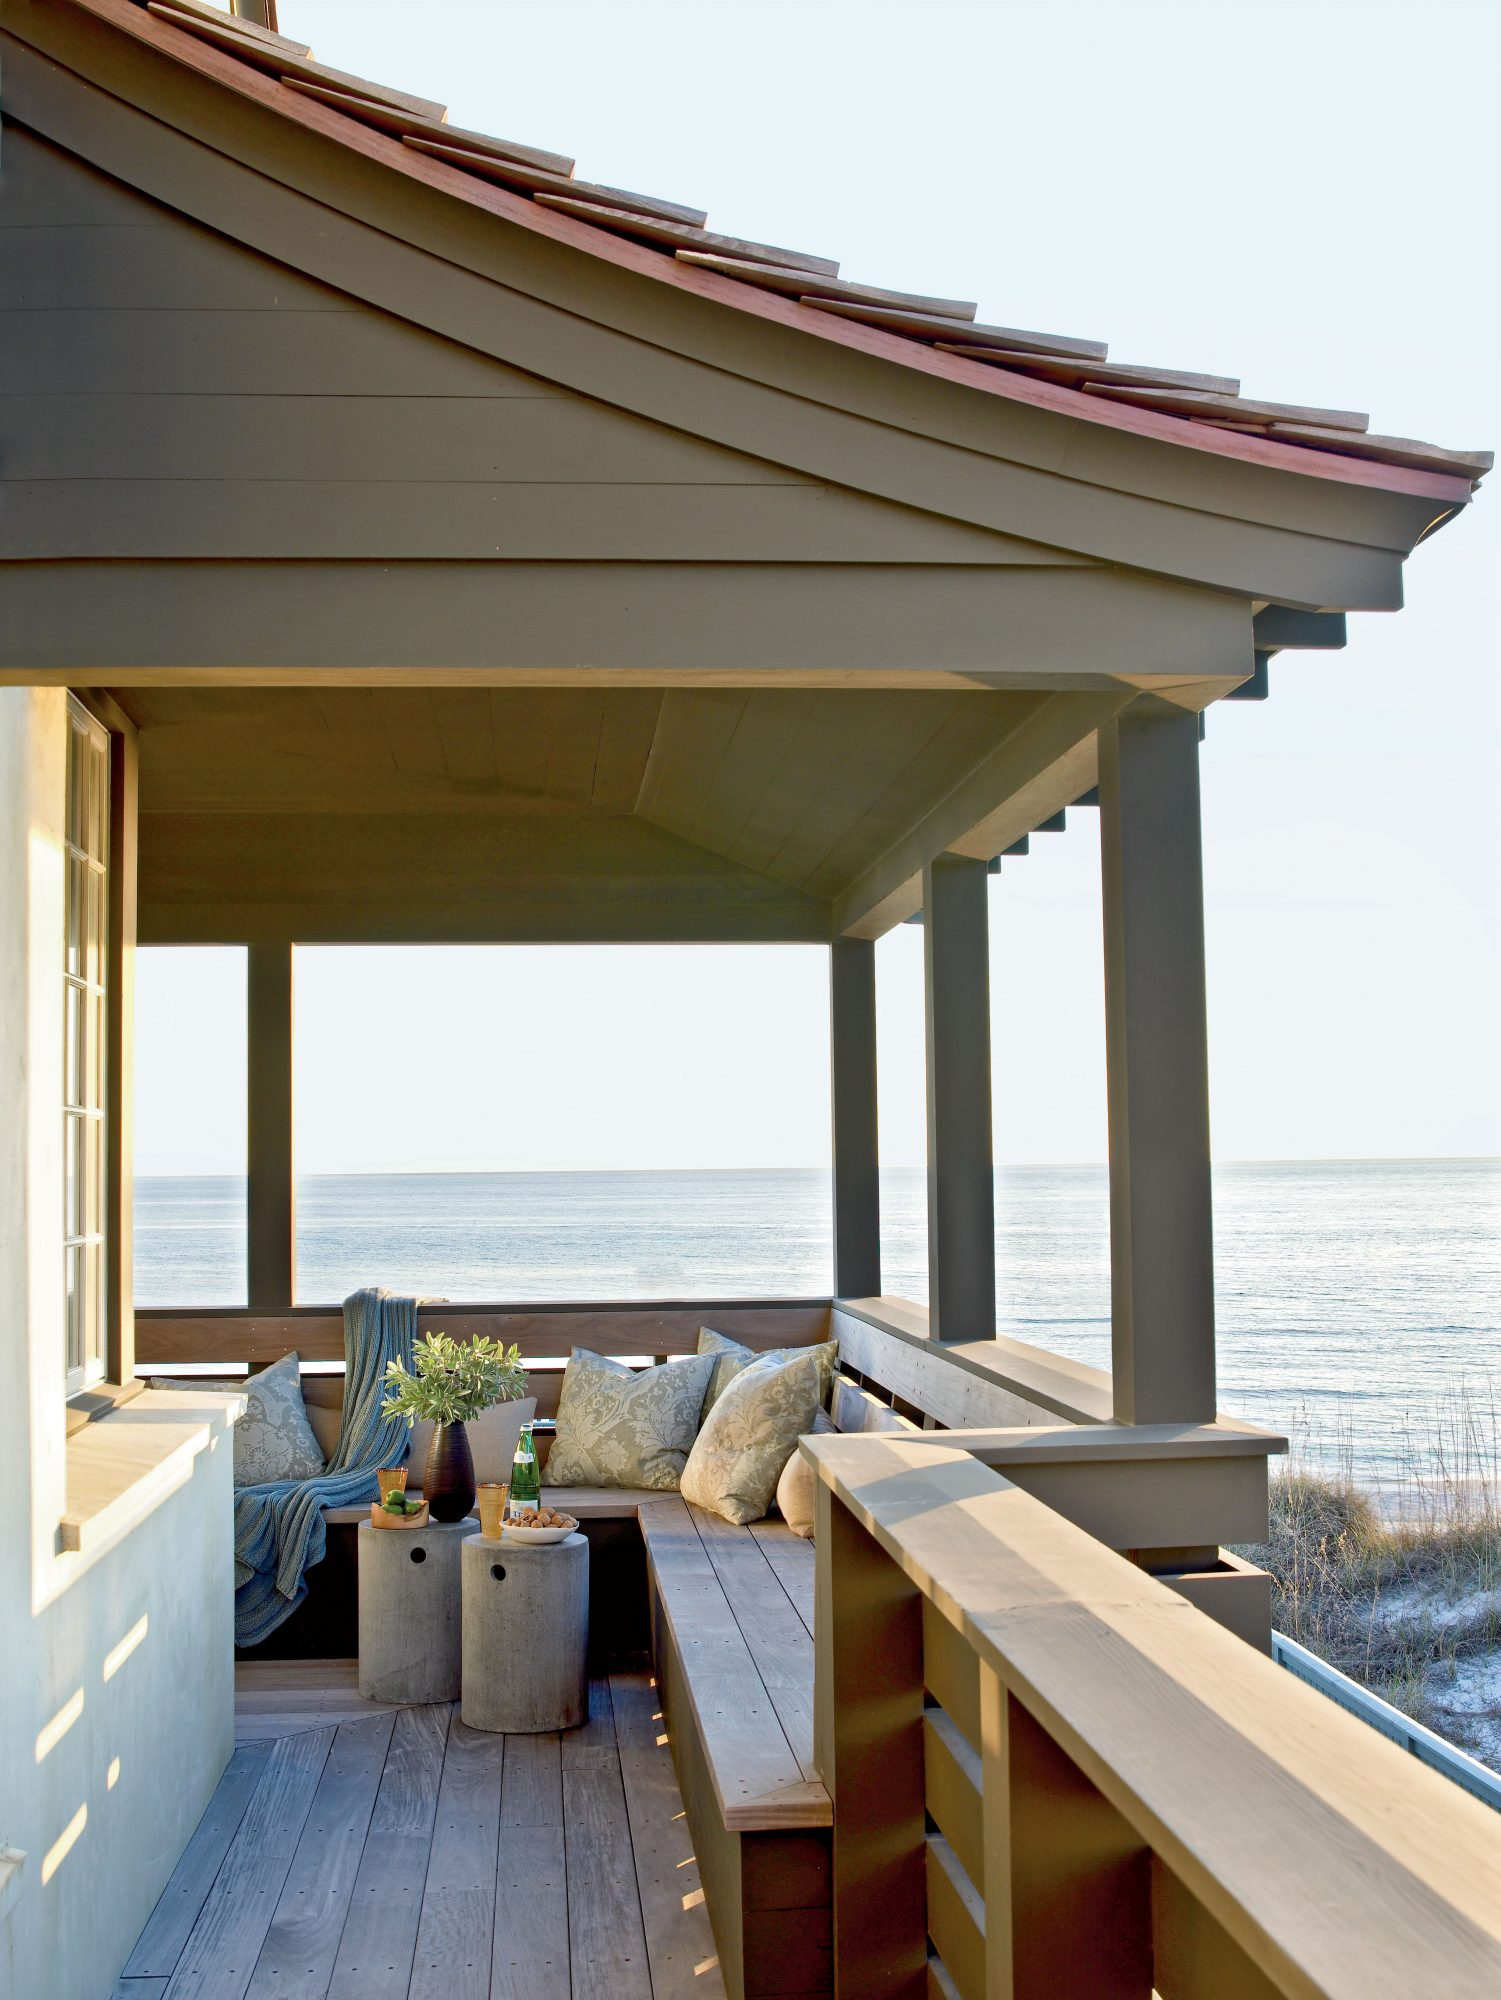 A wraparound porch ensures you'll have spectacular views. Built-in benches with plush pillows provide seating to enjoy the relaxing ocean waves.